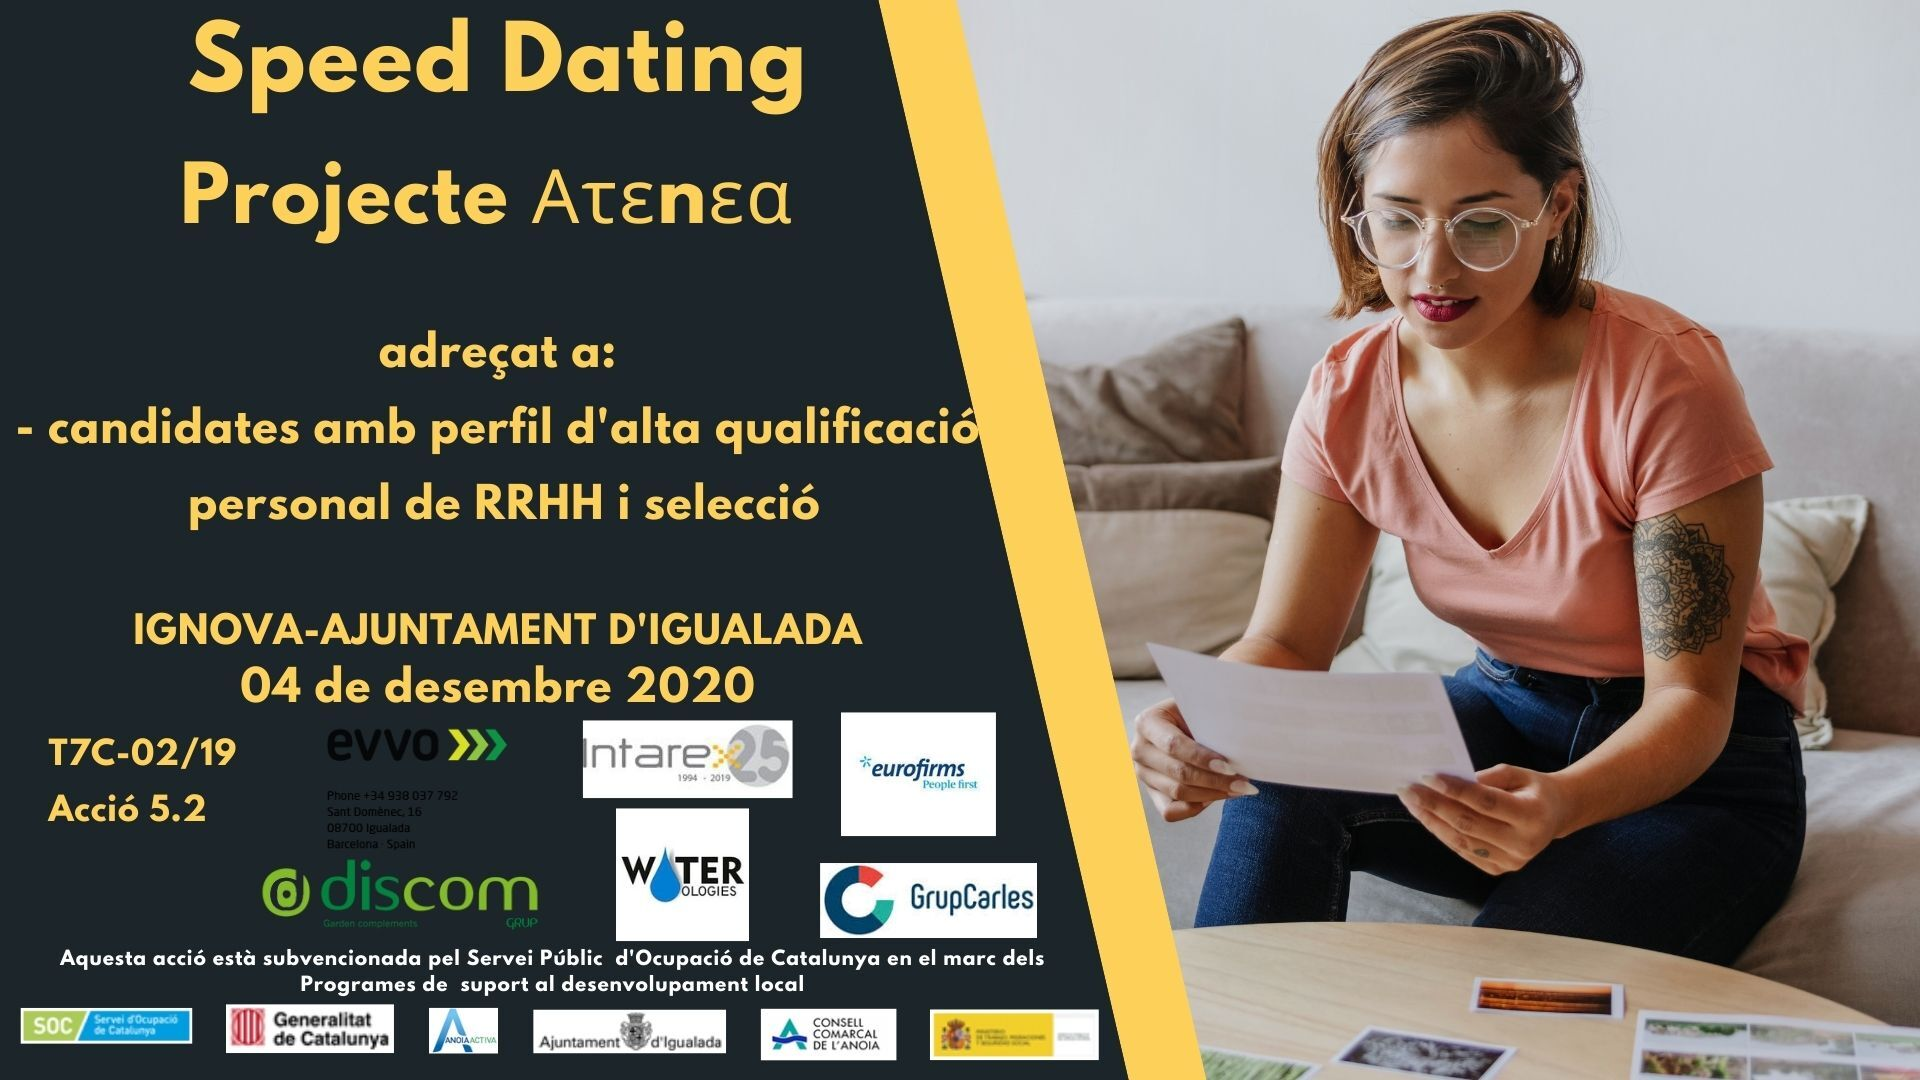 Speed Dating Atenea